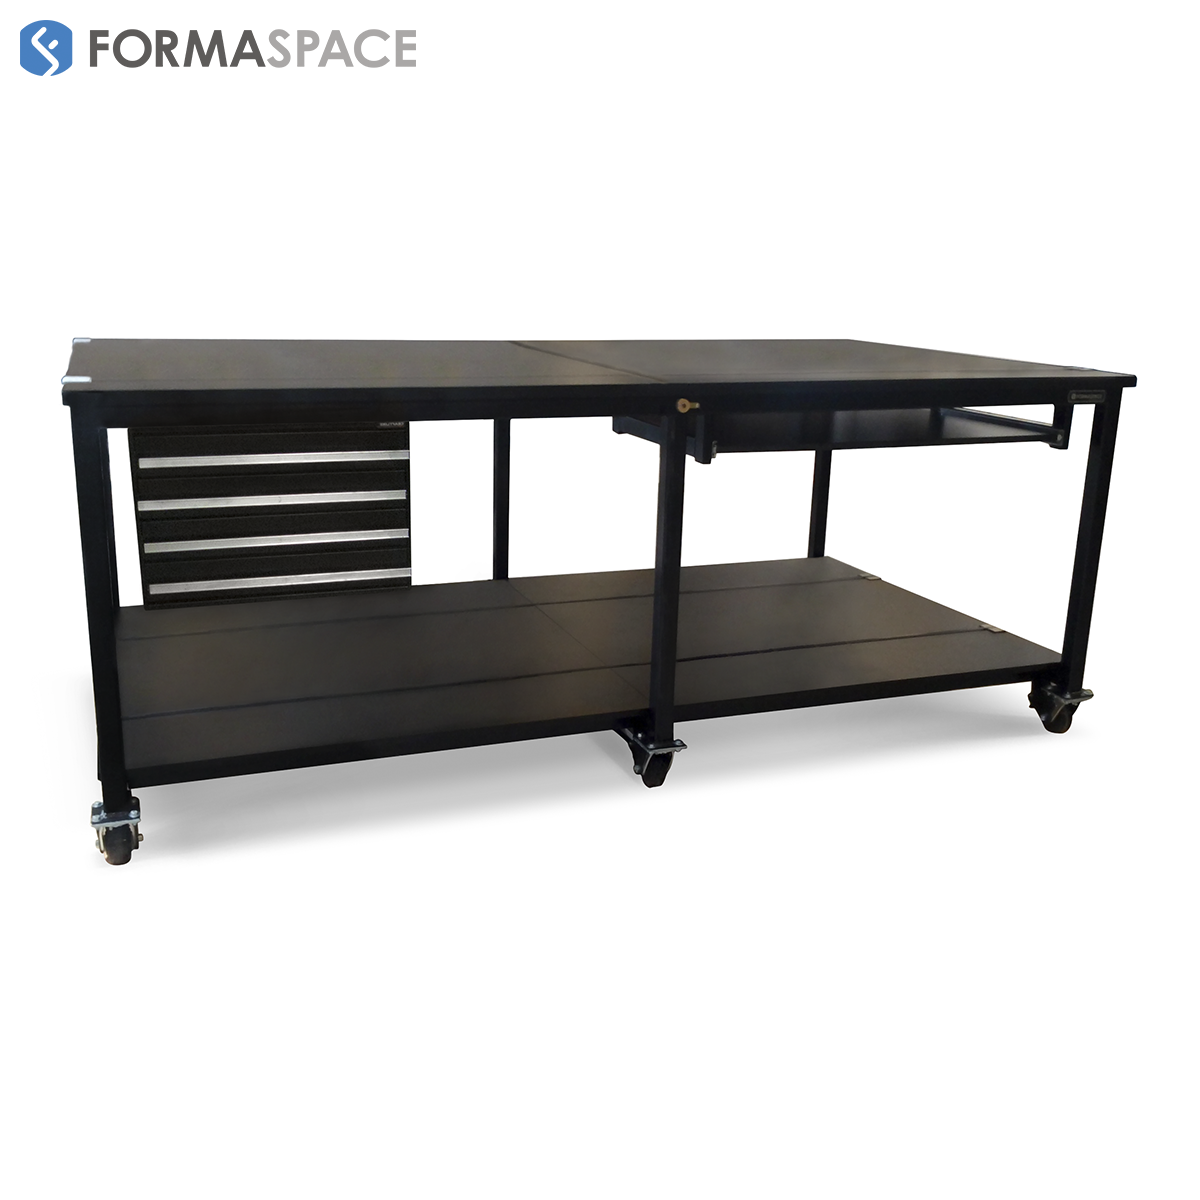 9ft heavy duty workstation with casters